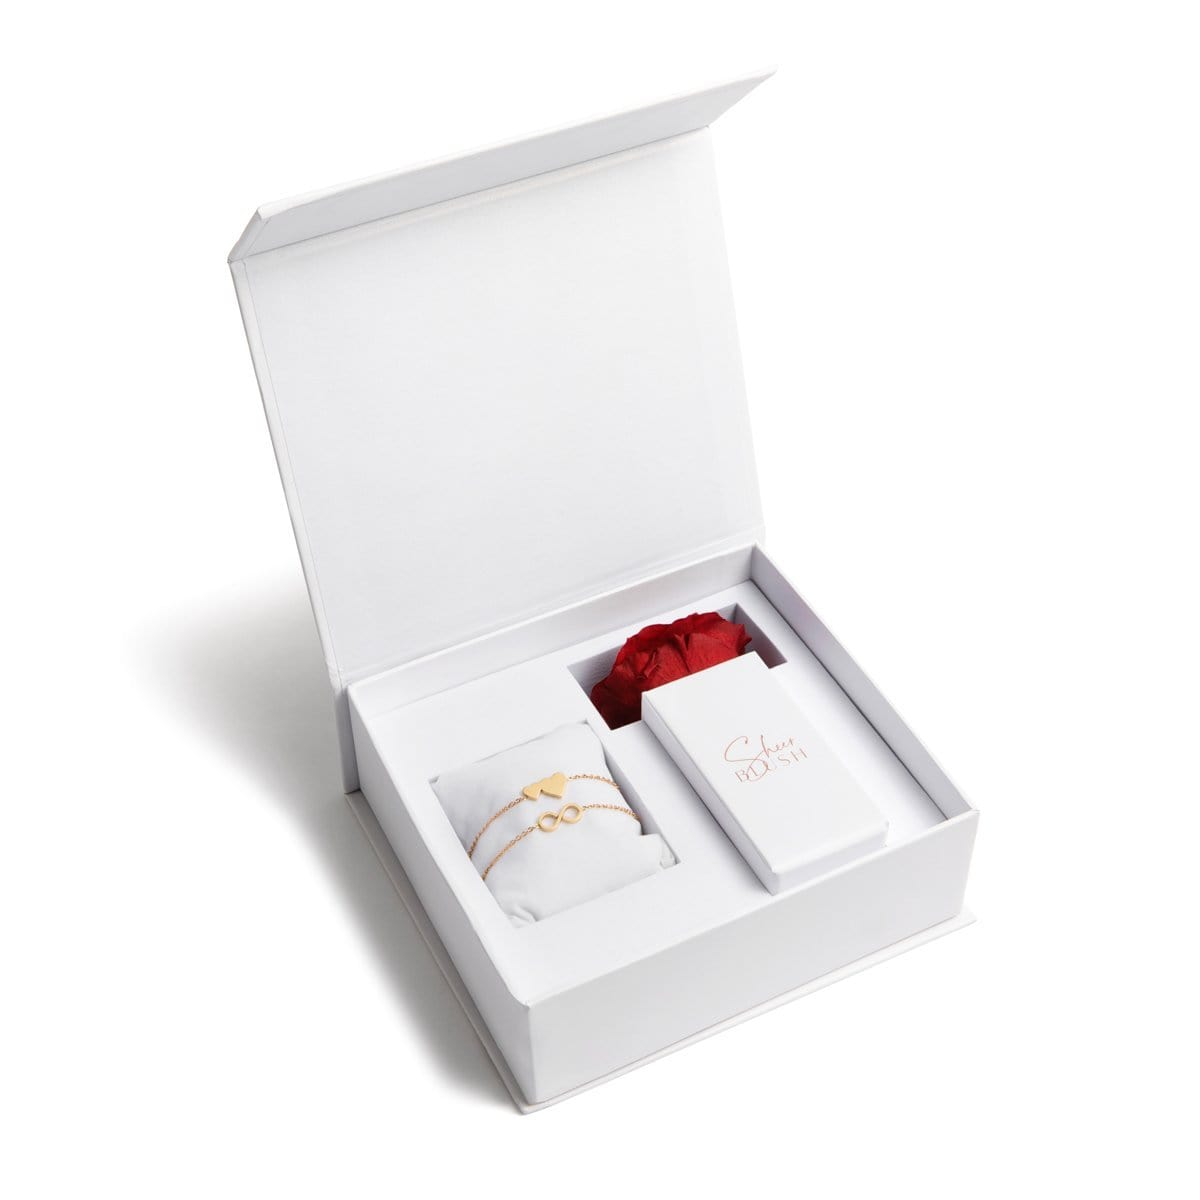 The Gold Infinite Love Geschenkset (Ruby)